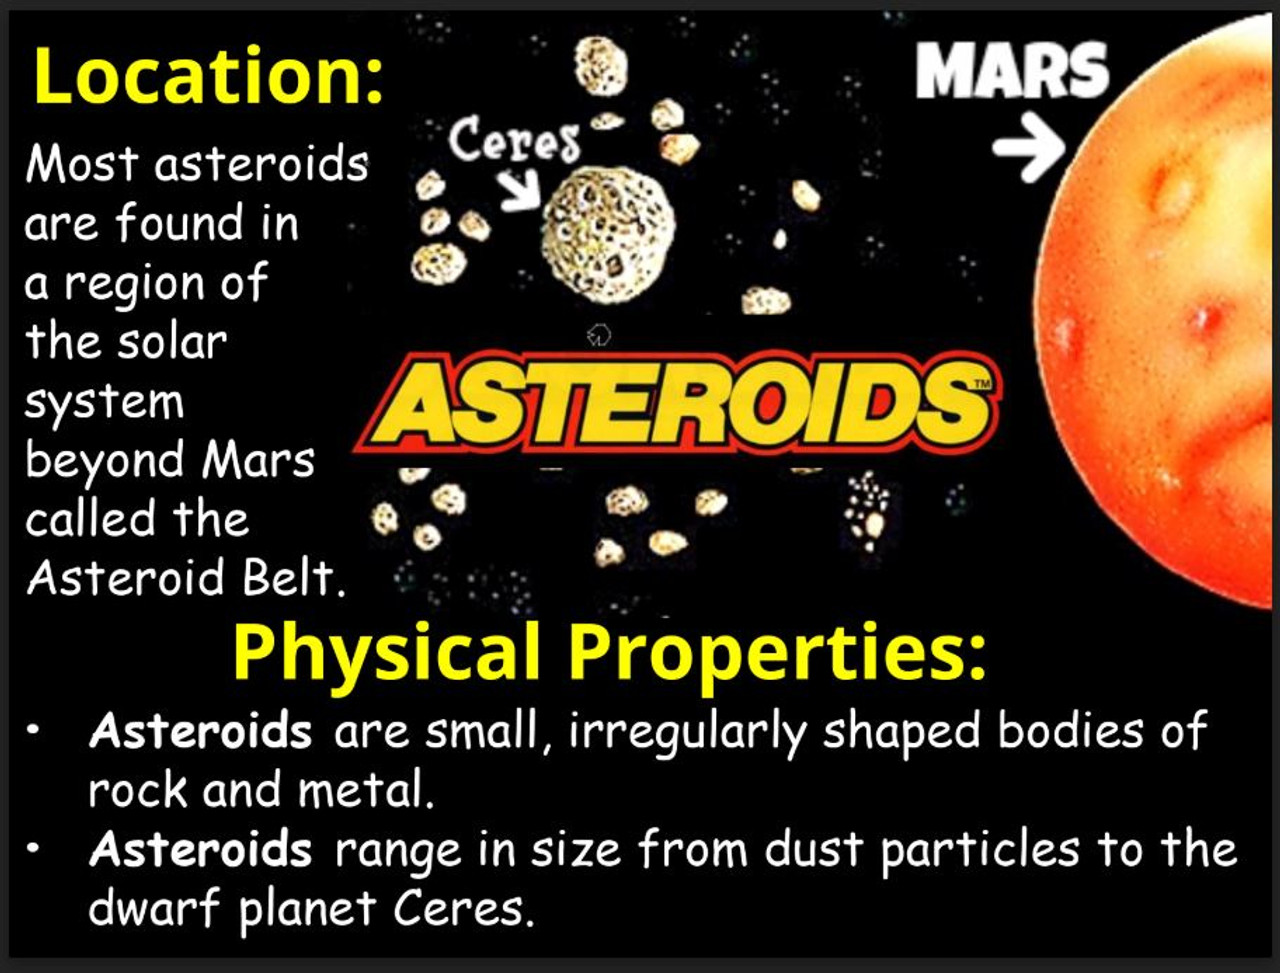 Astronomy - Minor Objects